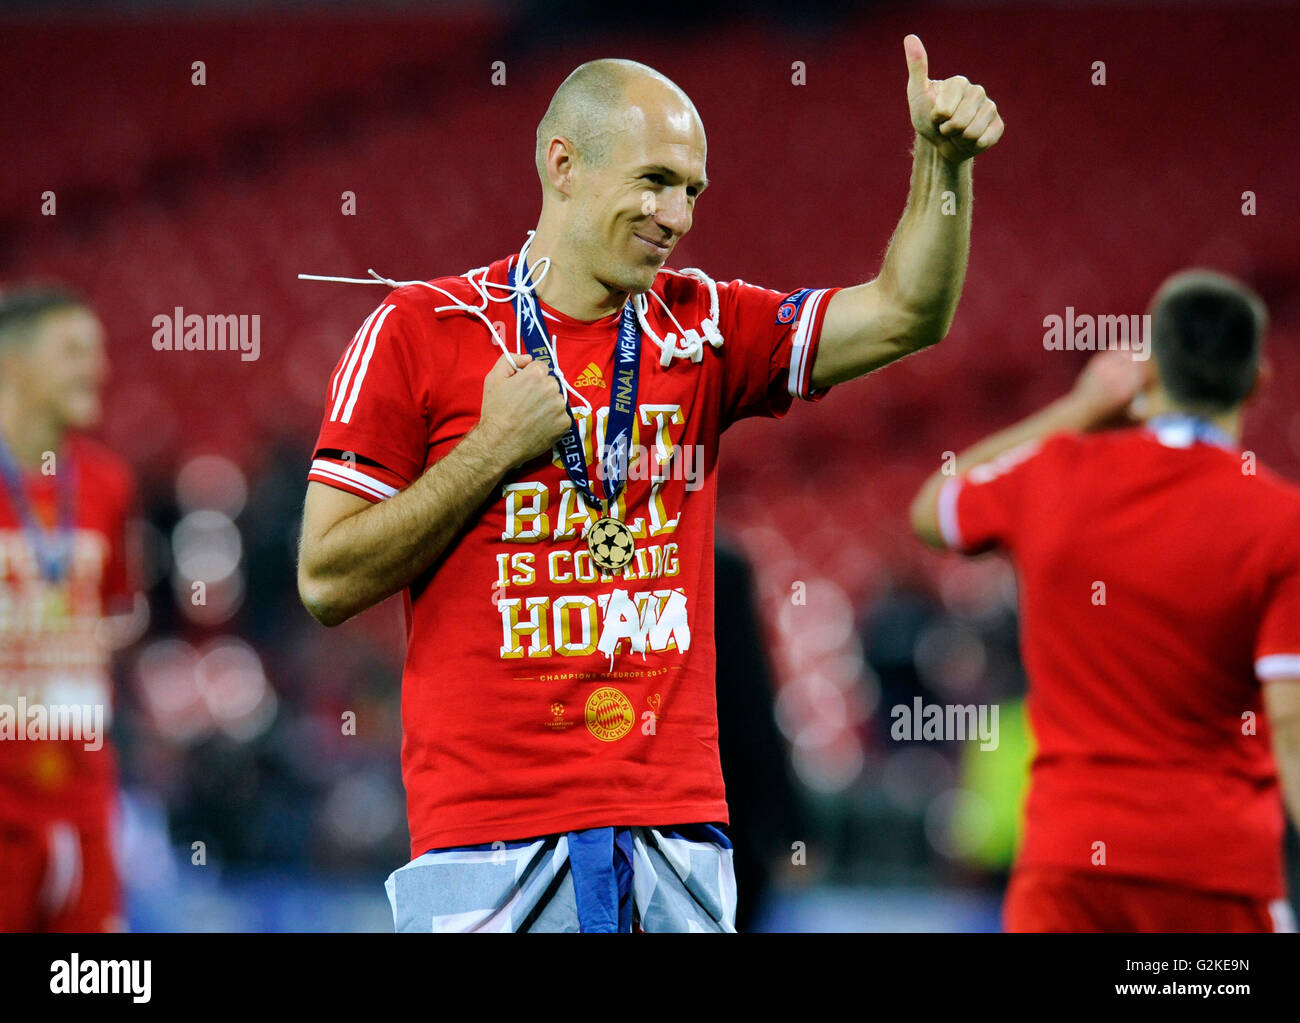 Arjen robben making a thumbs up gesture at the end of the game uefa arjen robben making a thumbs up gesture at the end of the game uefa champions league final 2013 borussia dortmund fc bayern voltagebd Choice Image